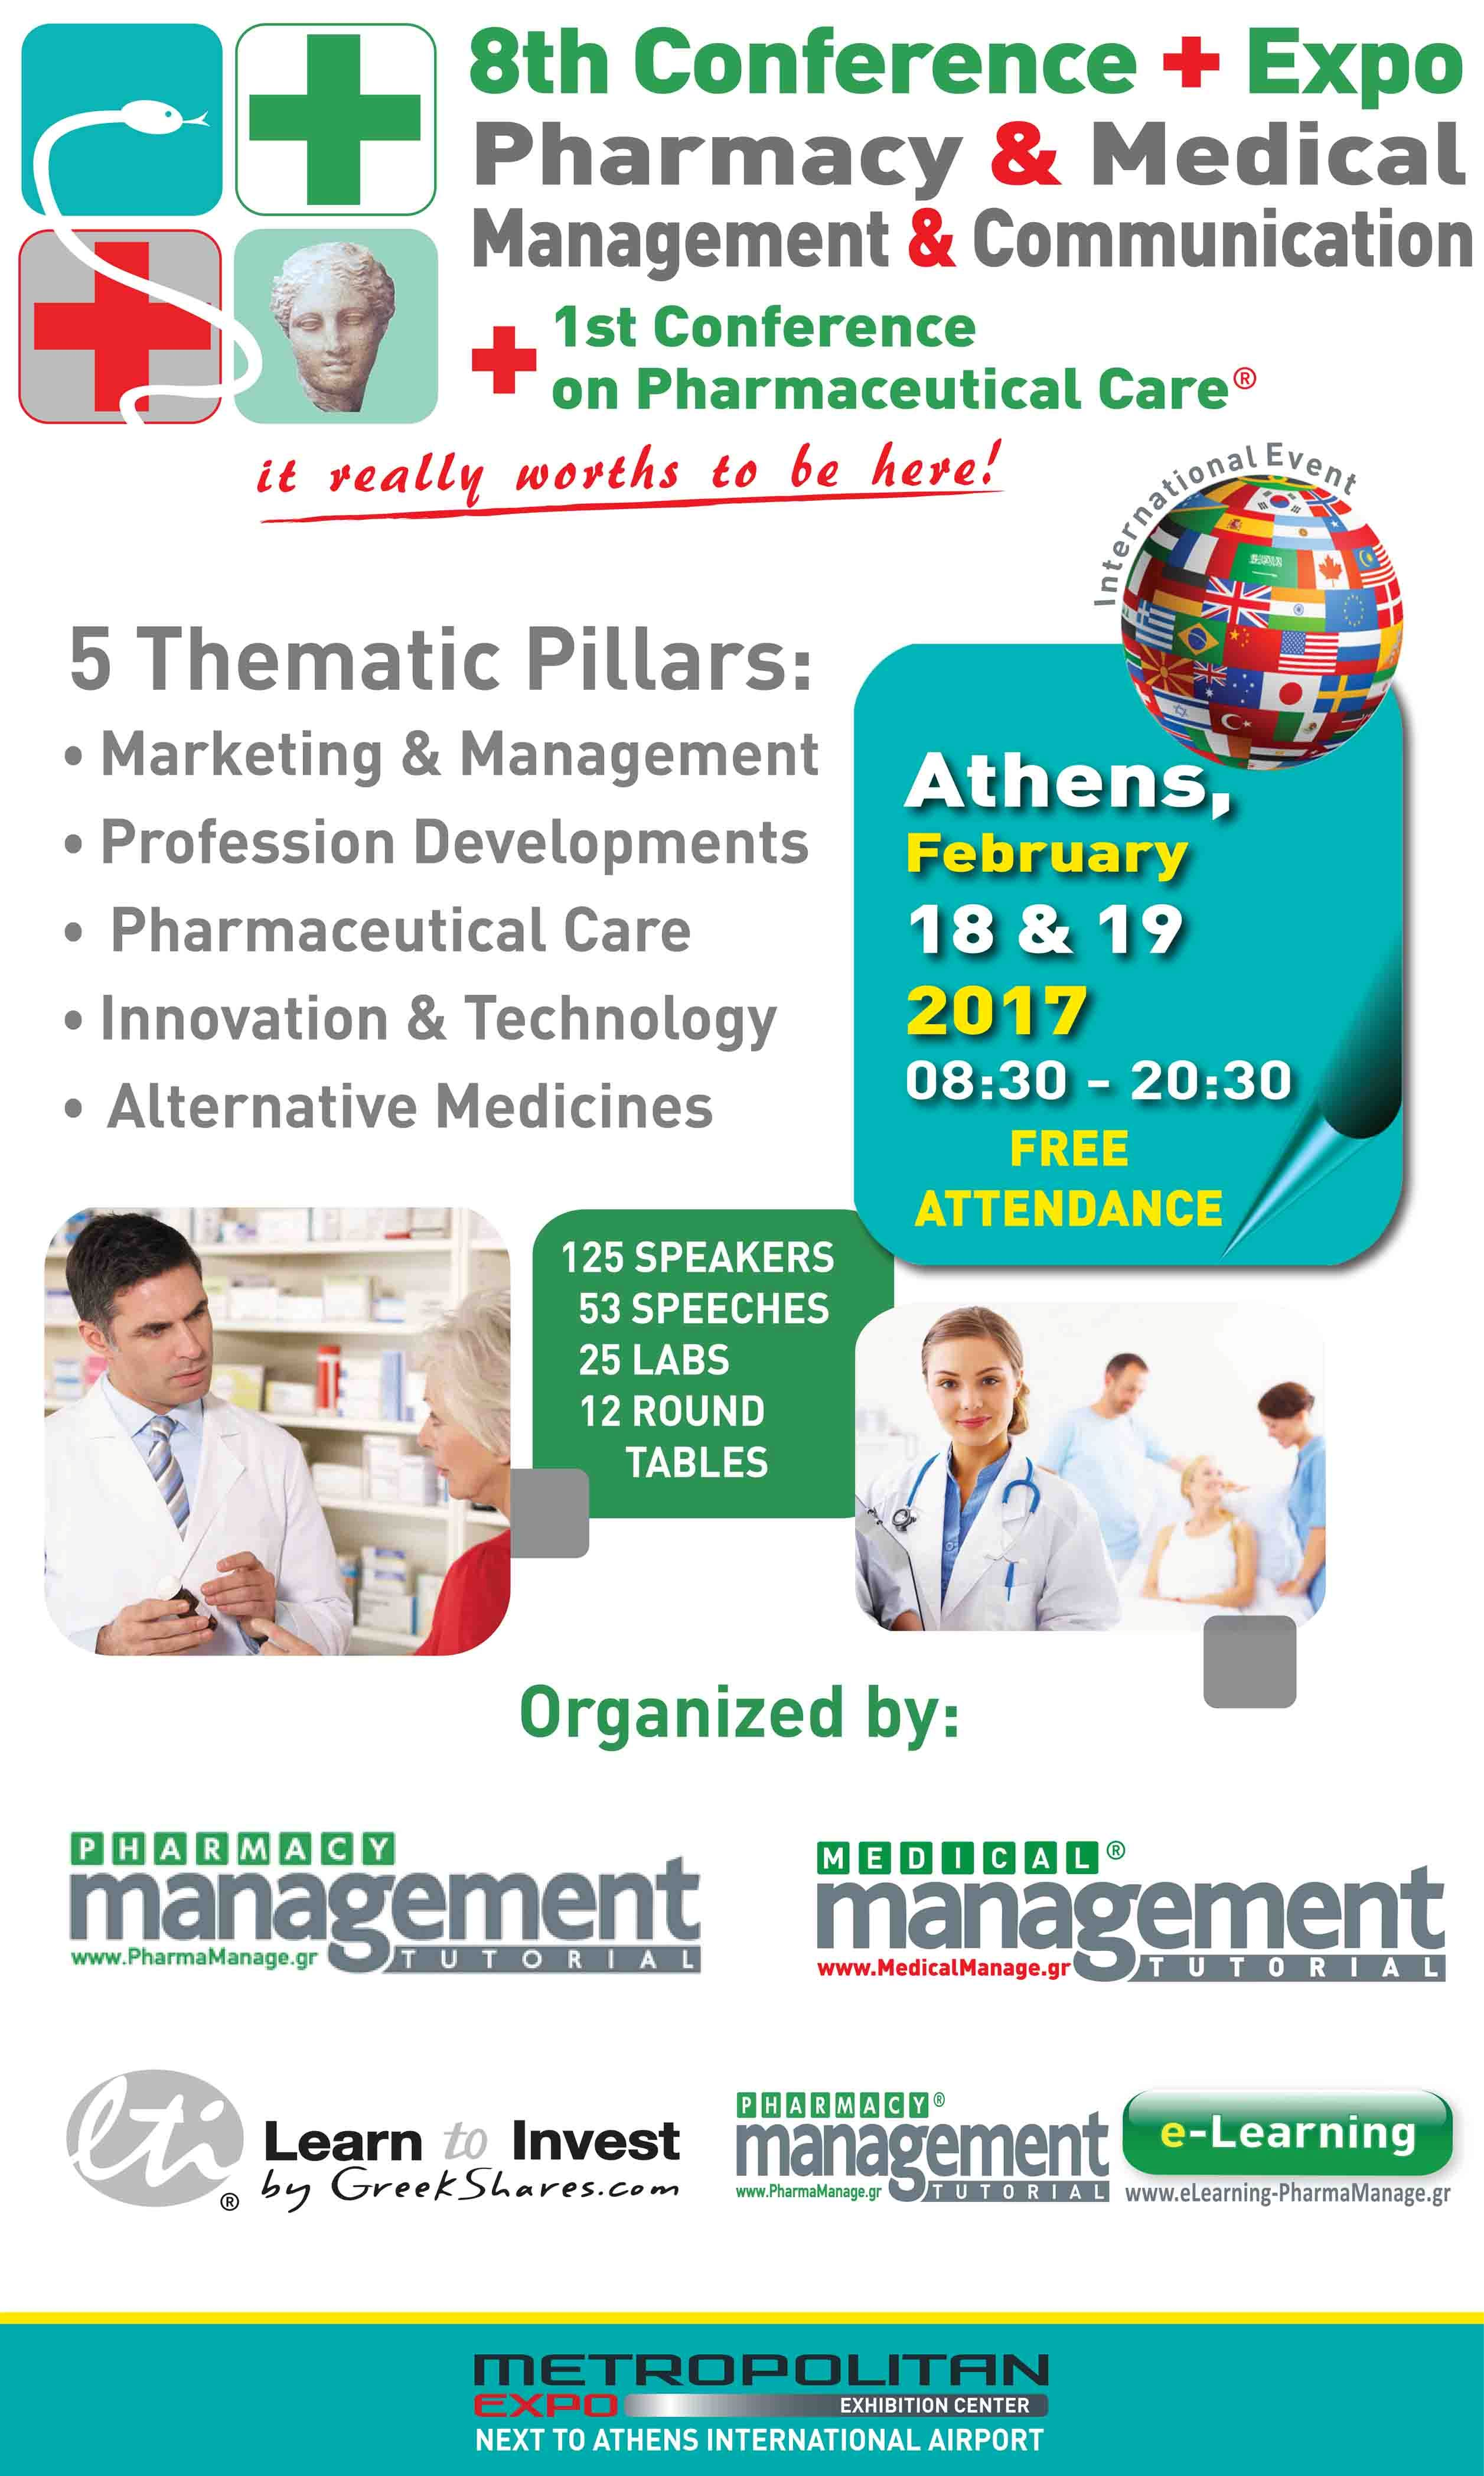 8th Conference + Expo - Athens, February 18 and 19, 2017